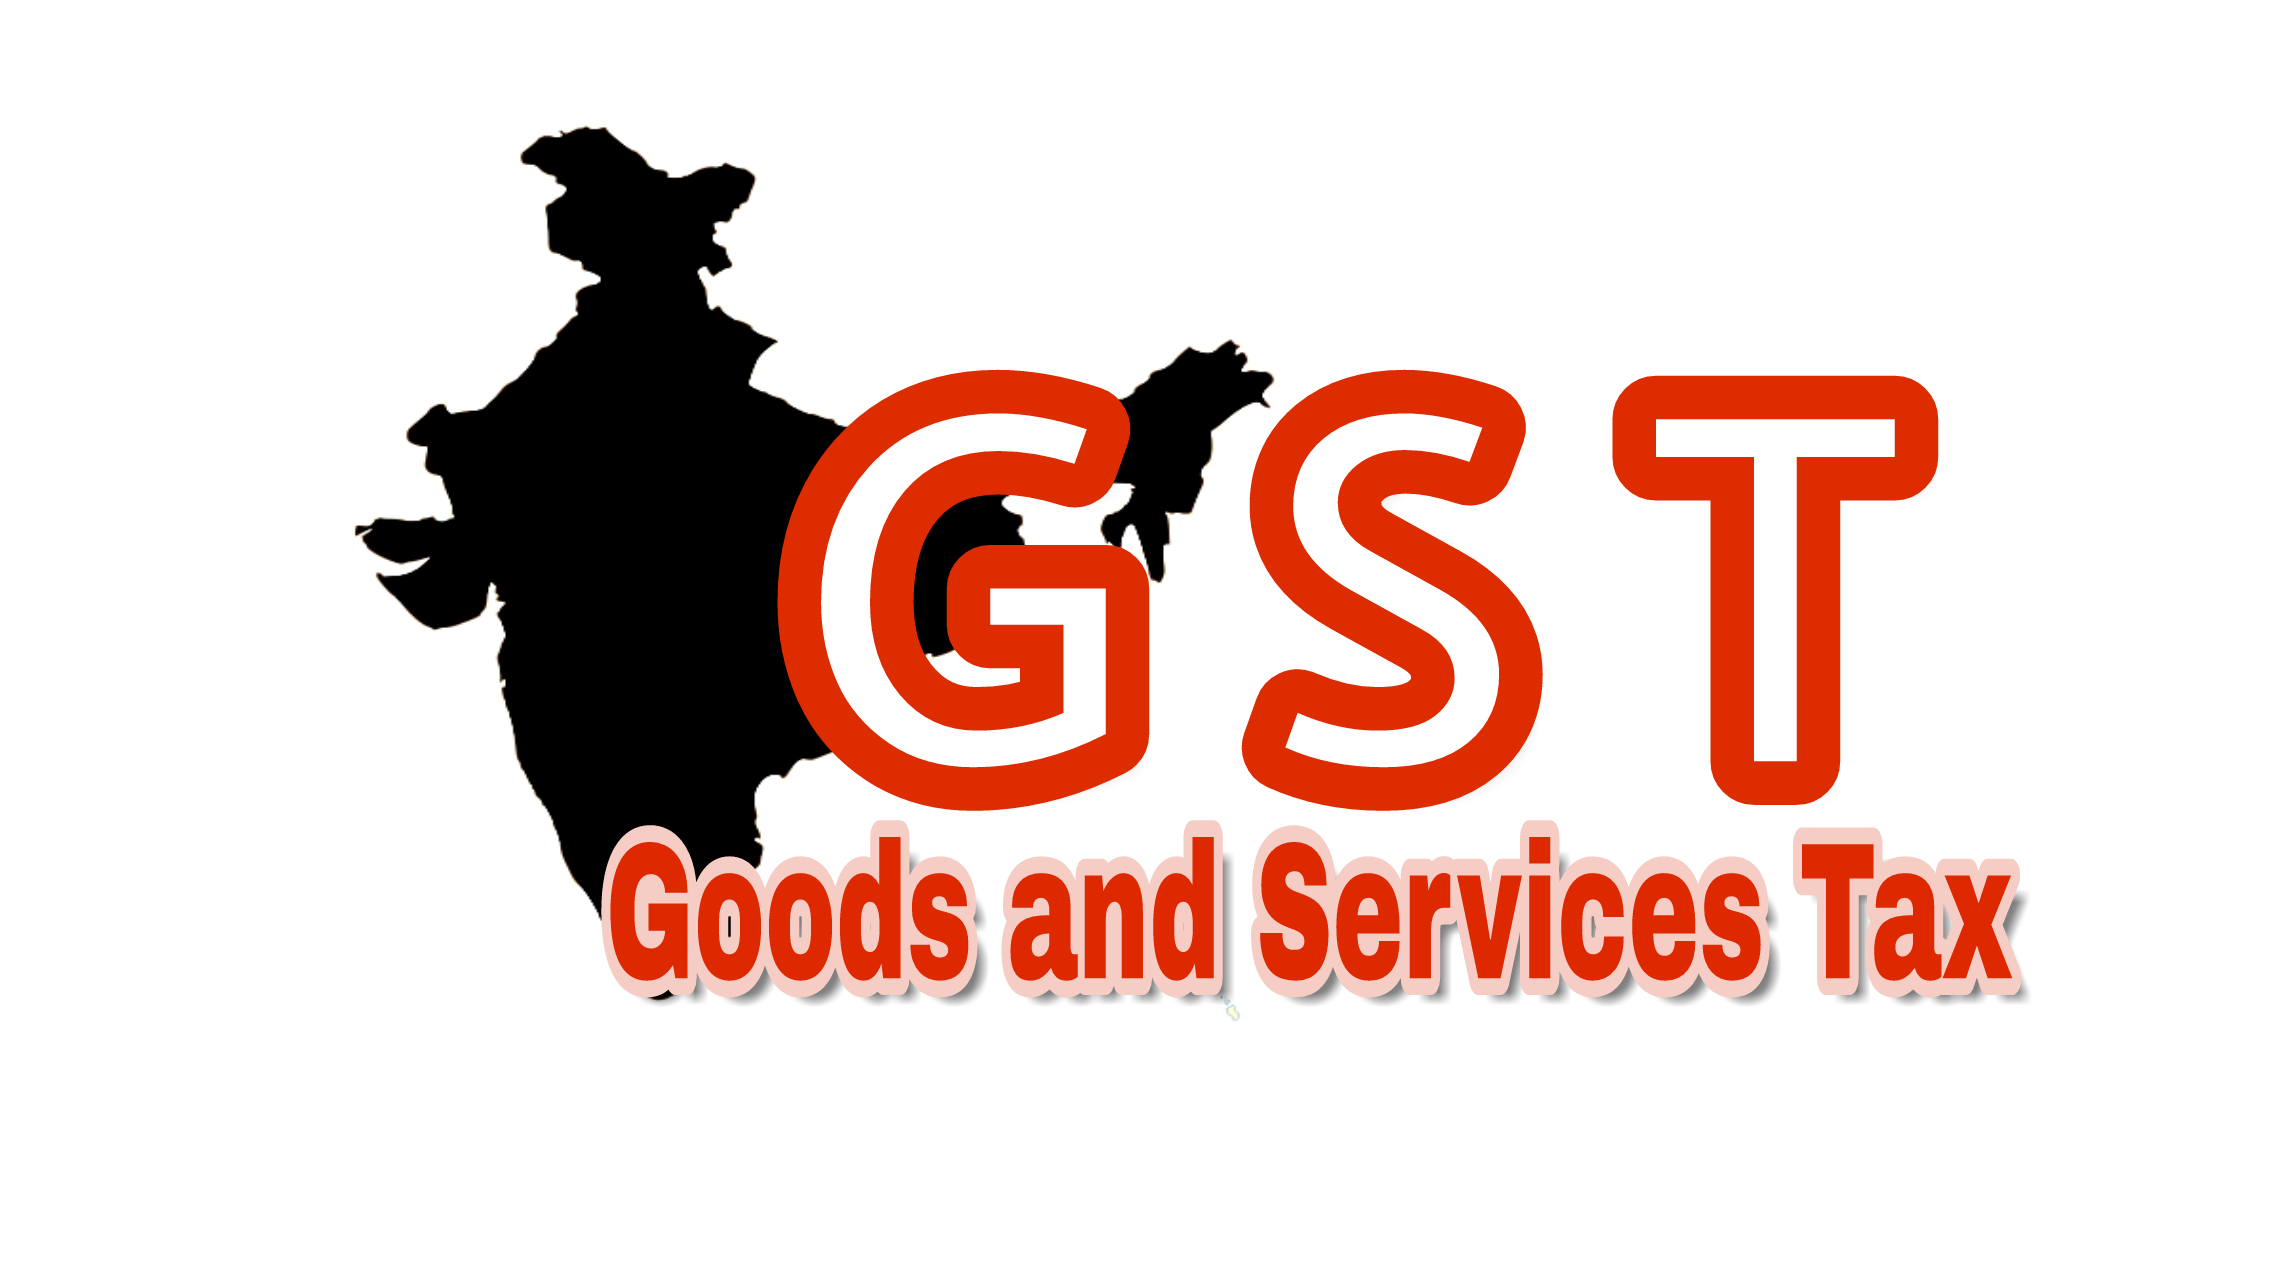 Changes in GST Act w.e.f. 01.